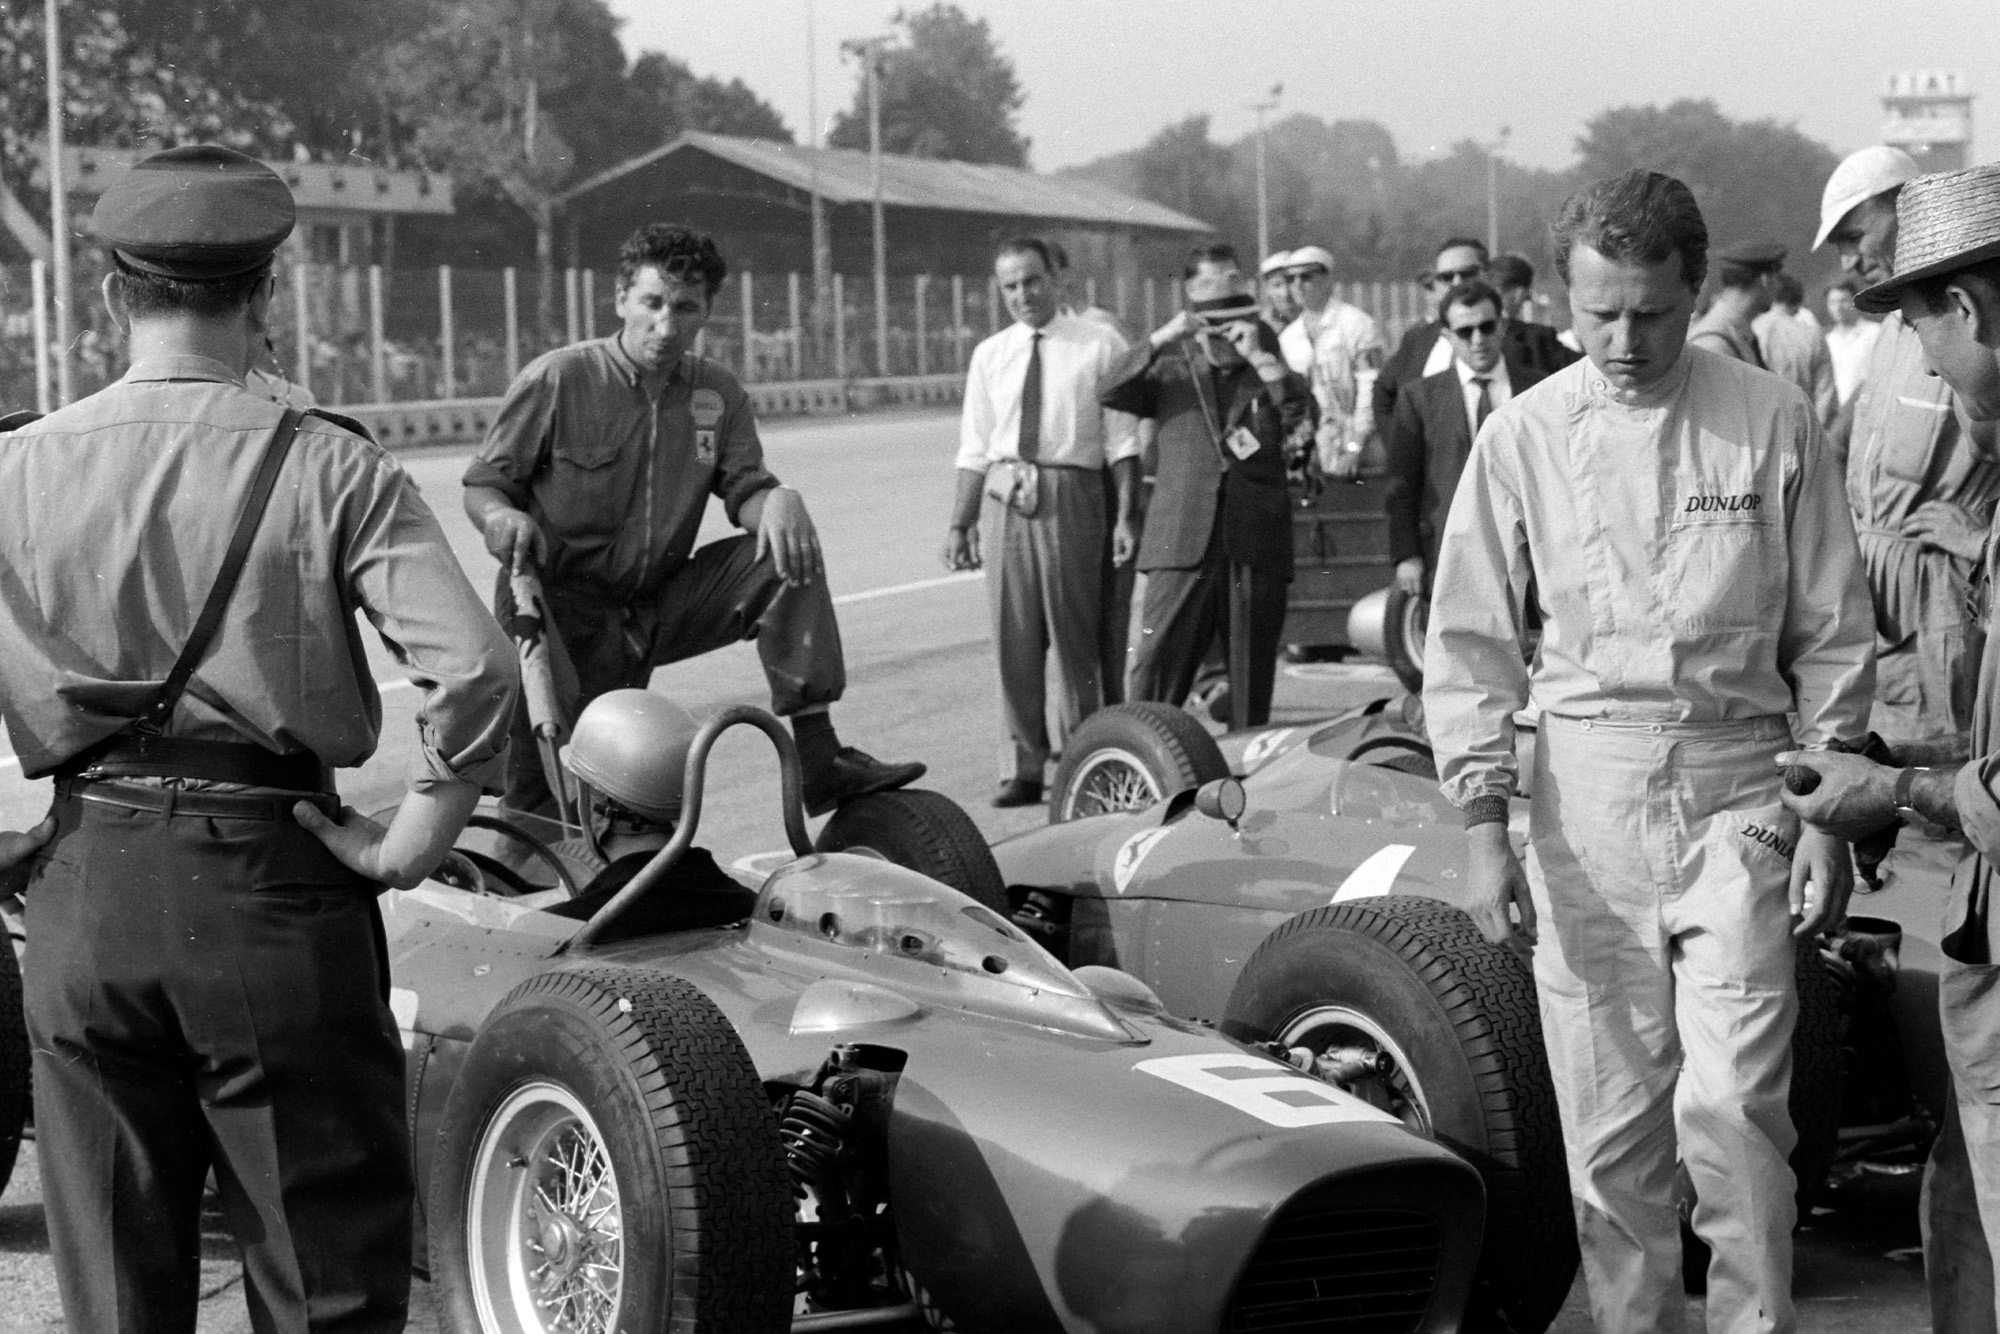 Bandini prepares to leave the Ferrari pit as team-mate Baghetti walks by